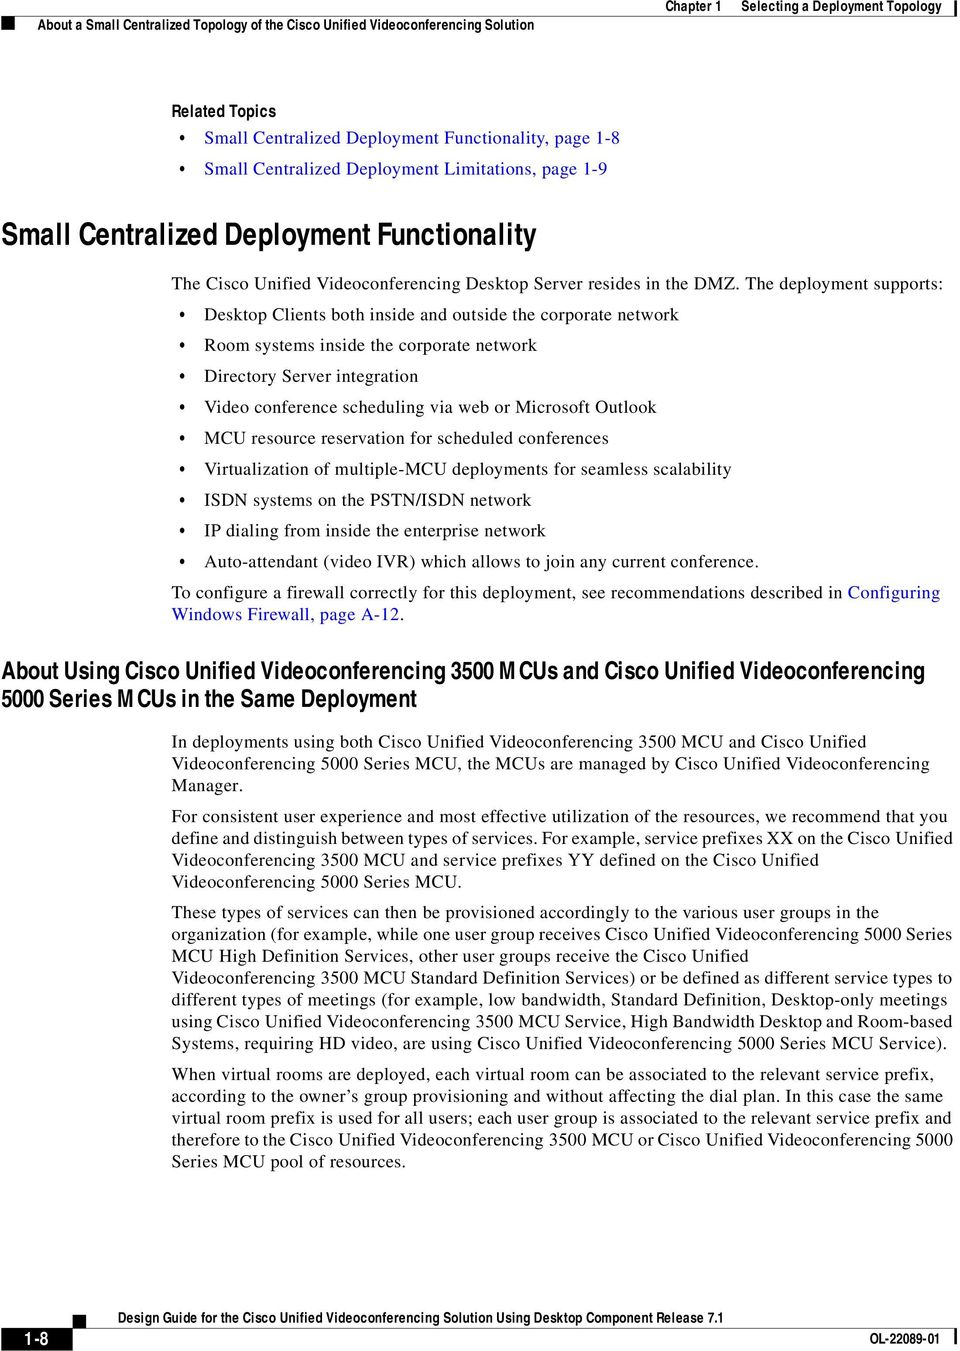 The deployment supports: Desktop Clients both inside and outside the corporate network Room systems inside the corporate network Directory Server integration Video conference scheduling via web or